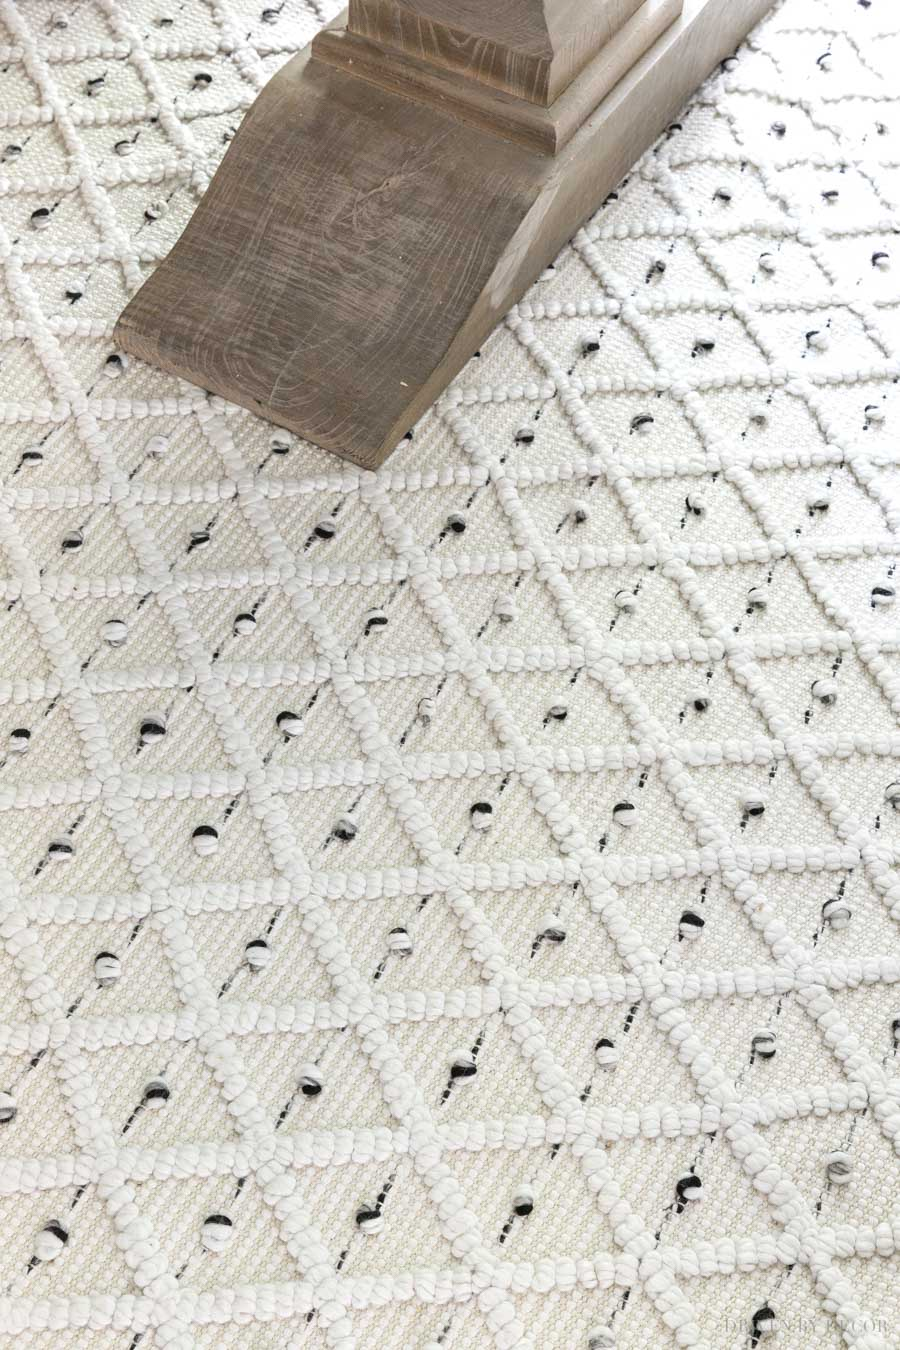 Love this patterned flatweave rug in cream with gray and black - gorgeous!